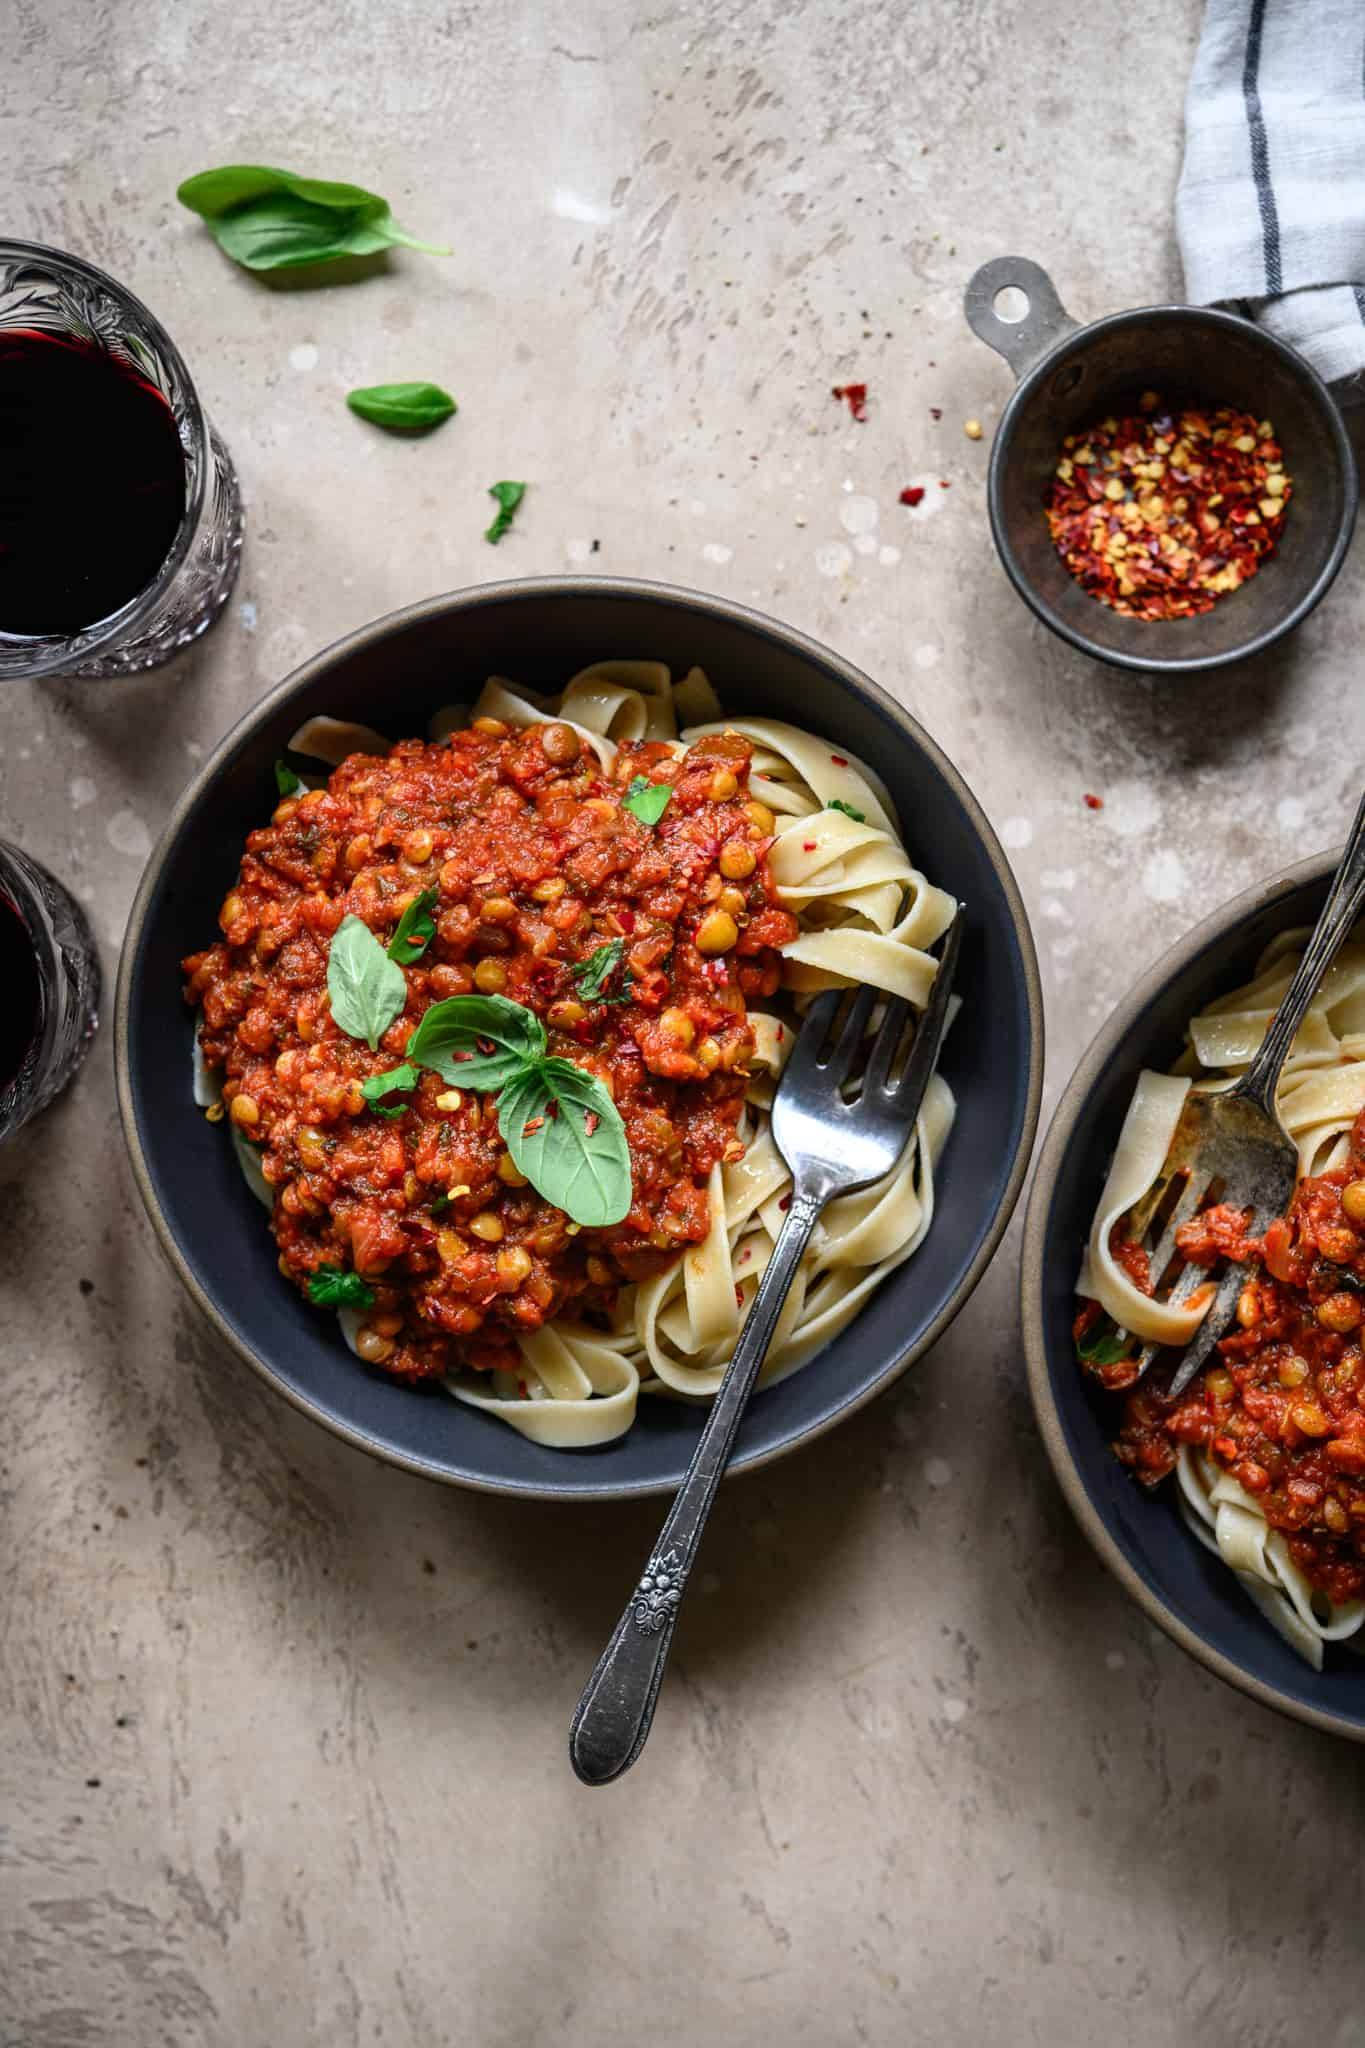 Overhead view of vegan lentil bolognese over pasta in two bowls